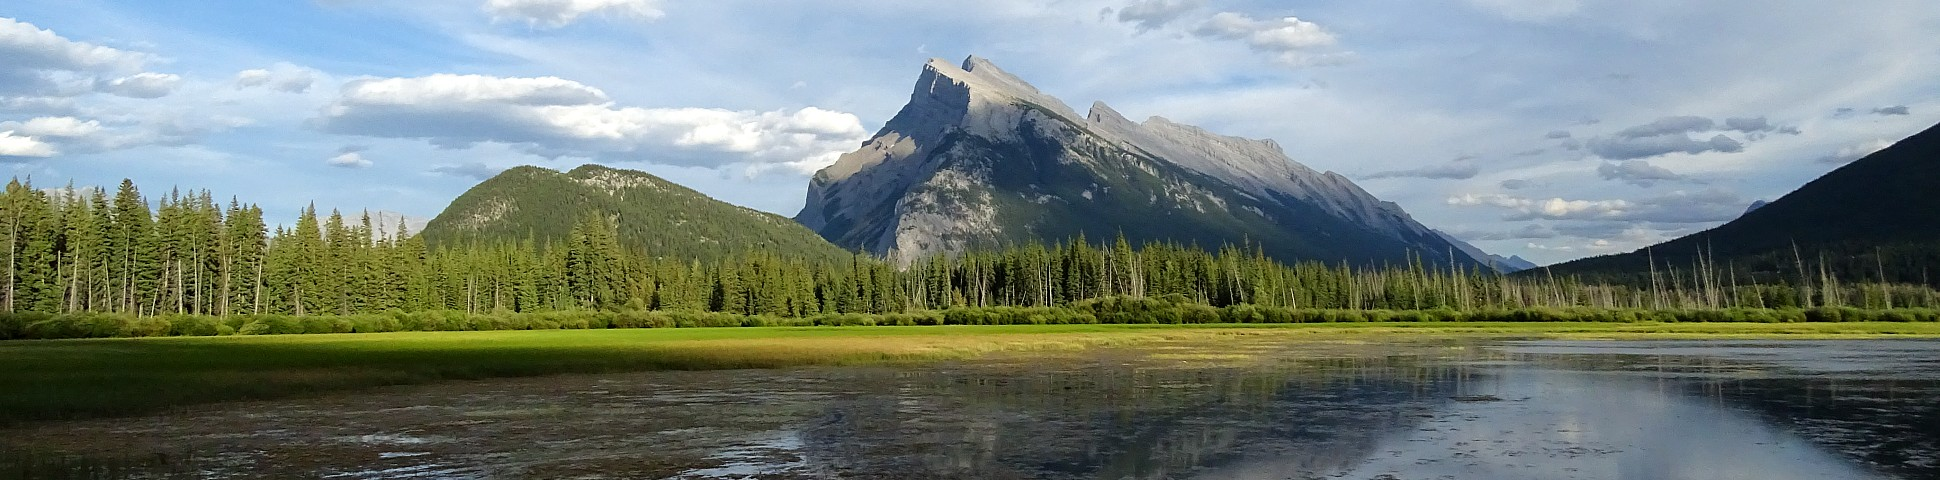 Pond in the foreground with Mount Rundle in the background